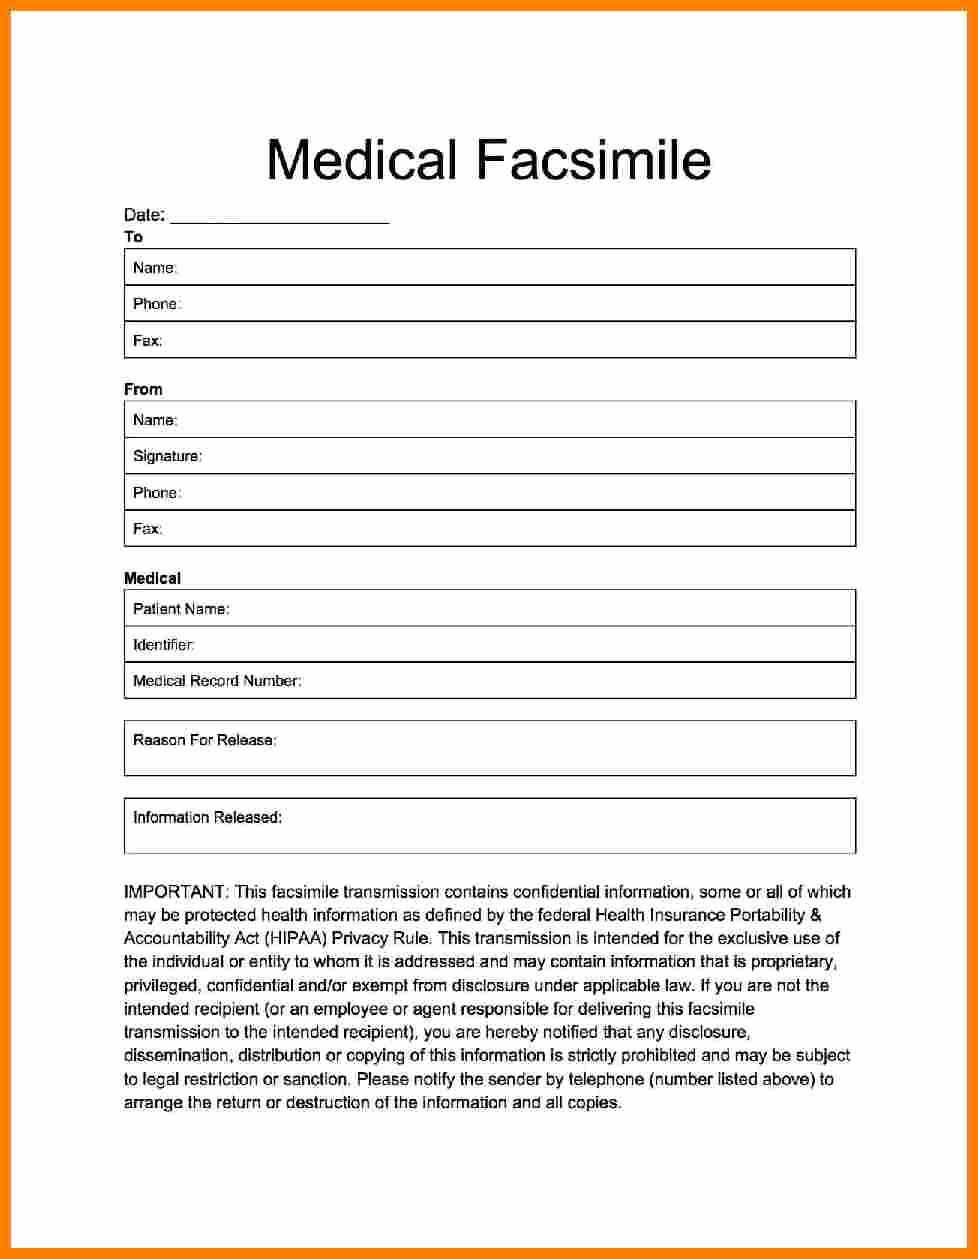 6 medical fax cover sheet template